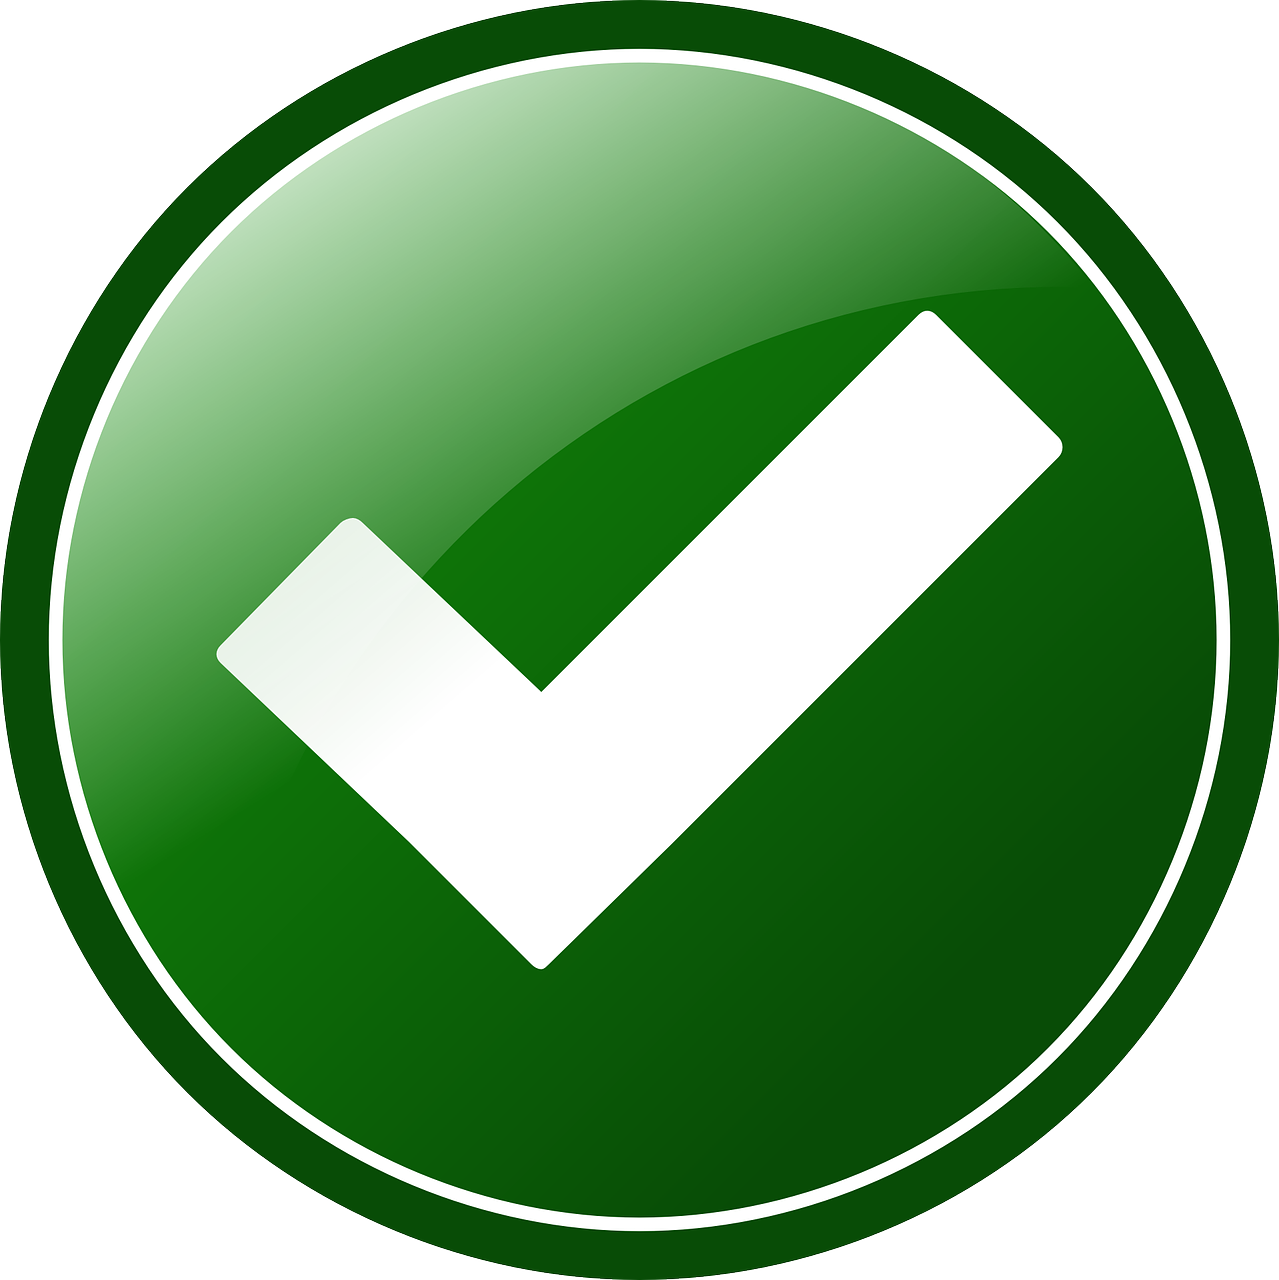 approved, button, check-151676.jpg